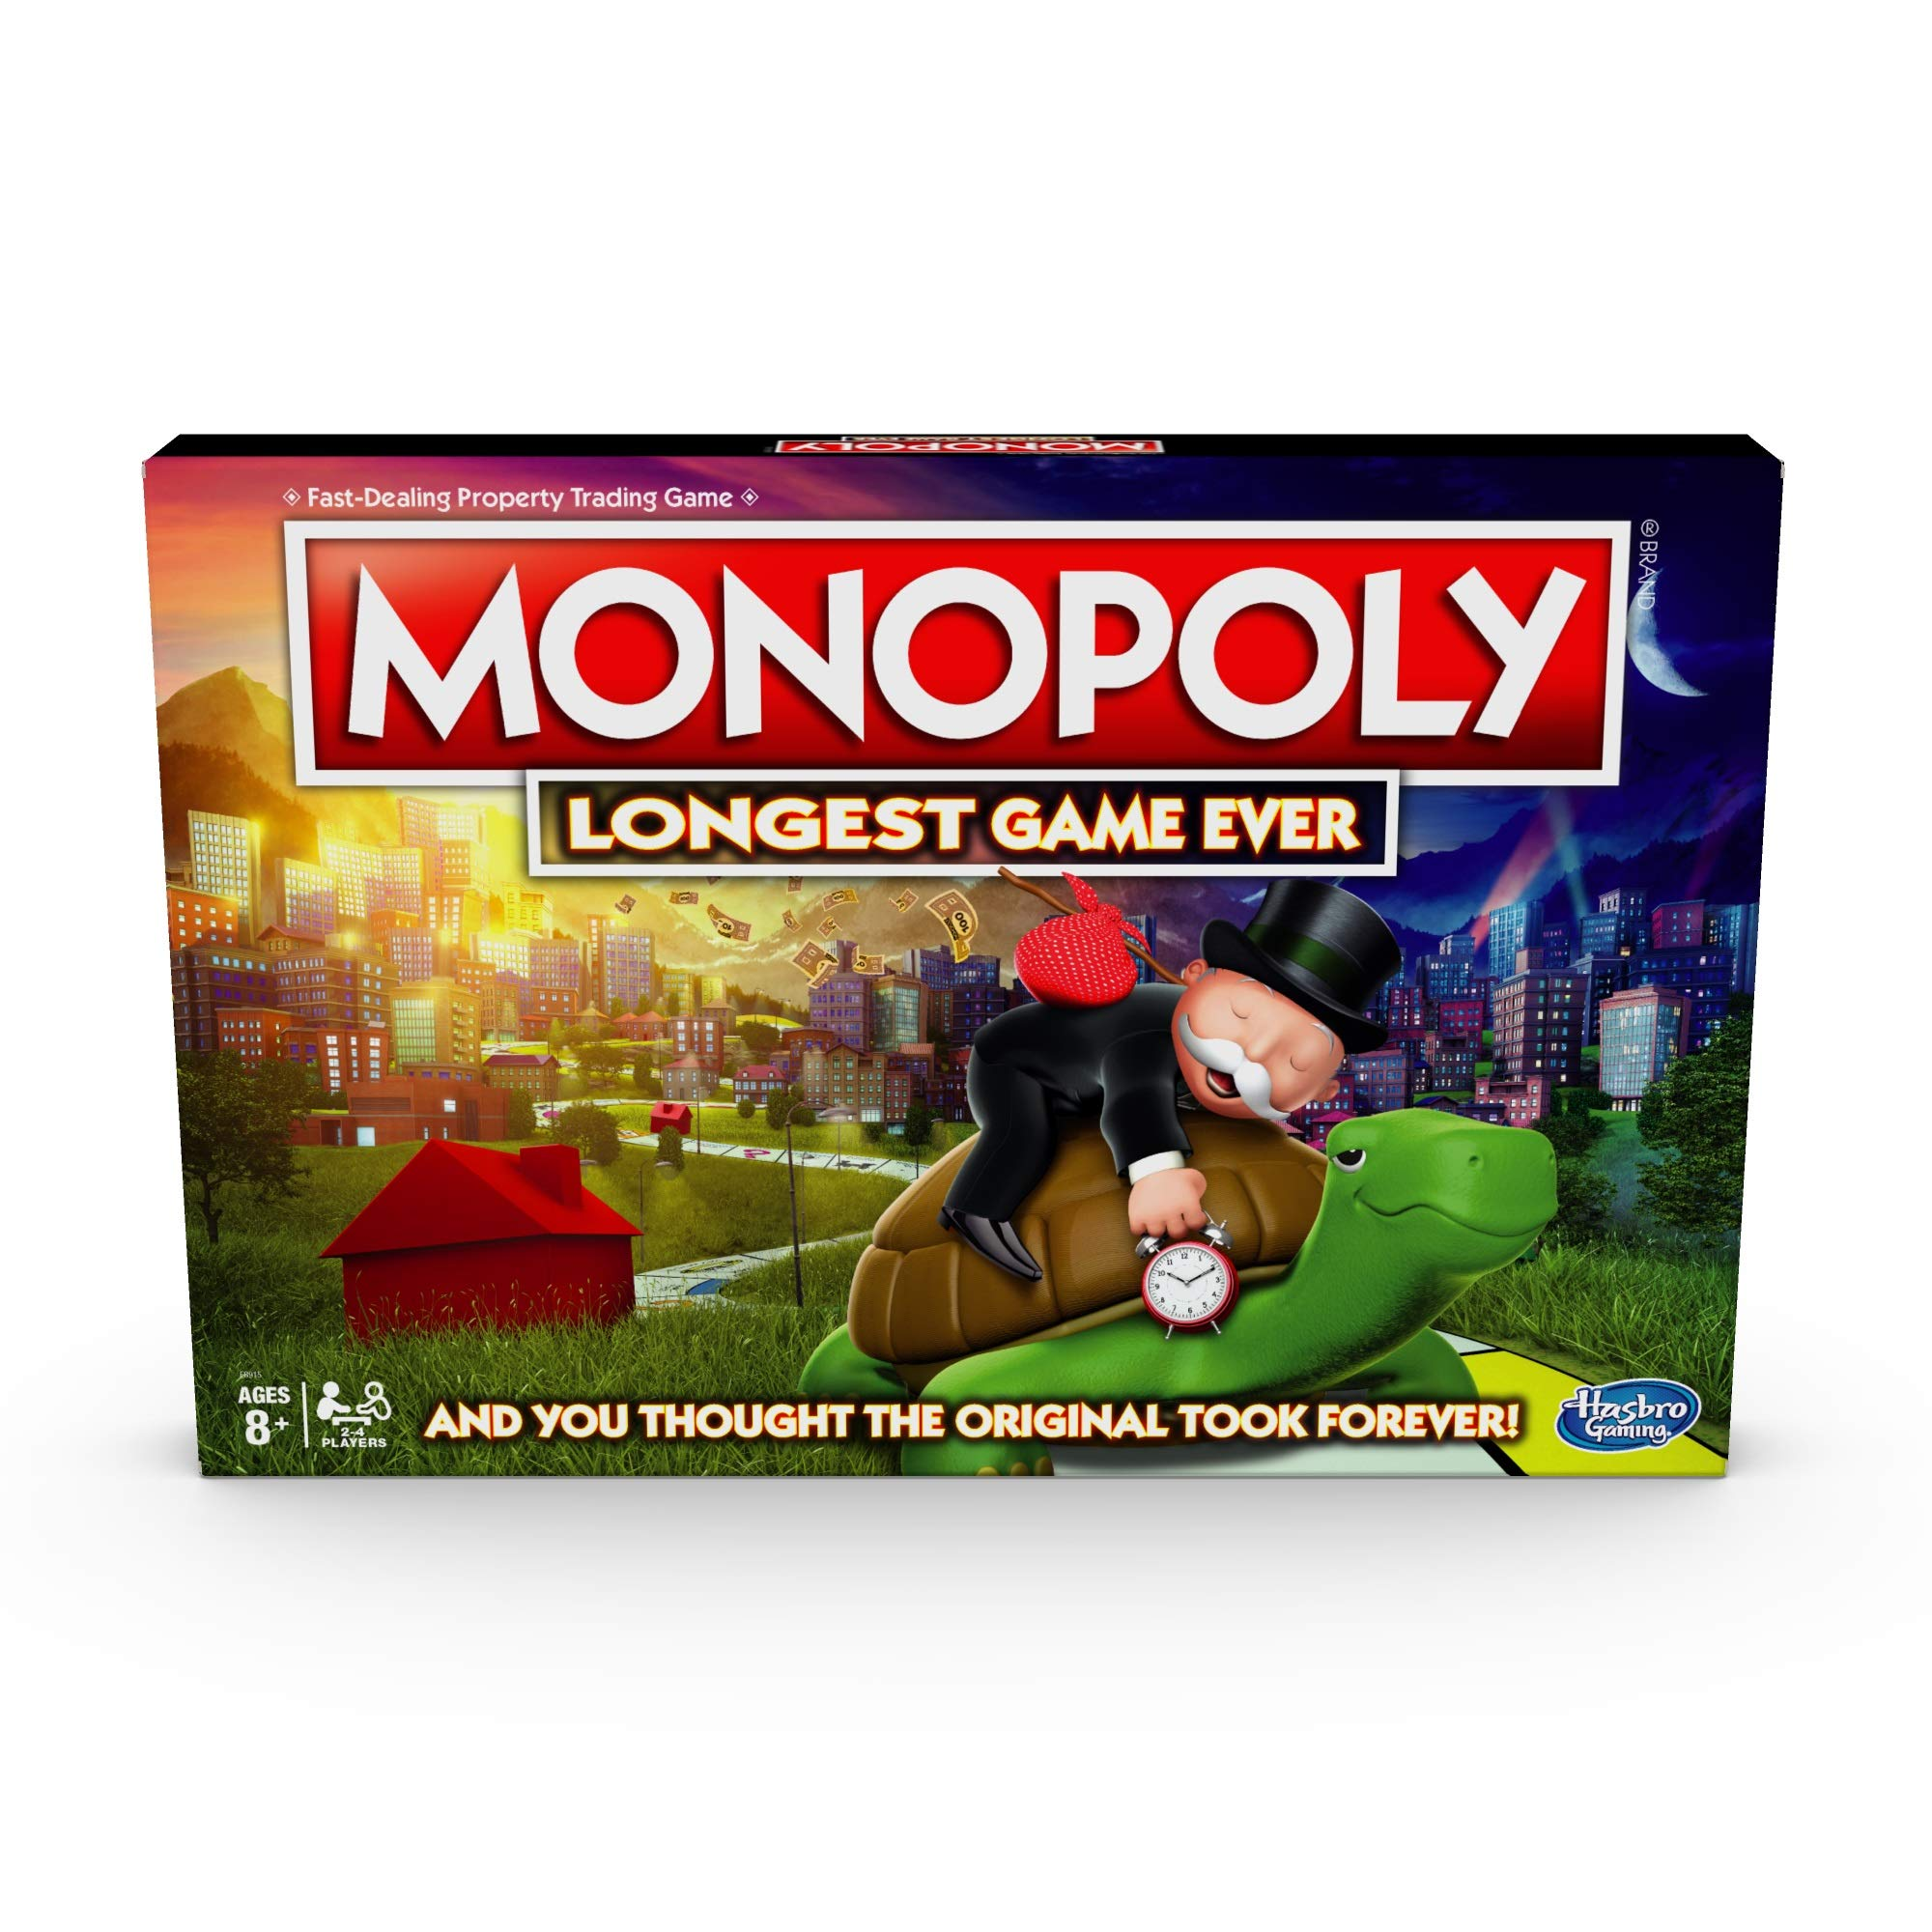 Monopoly Longest Game Ever, Classic Gameplay with Extended Play; Board Game (Amazon Exclusive) for Ages 8 & Up